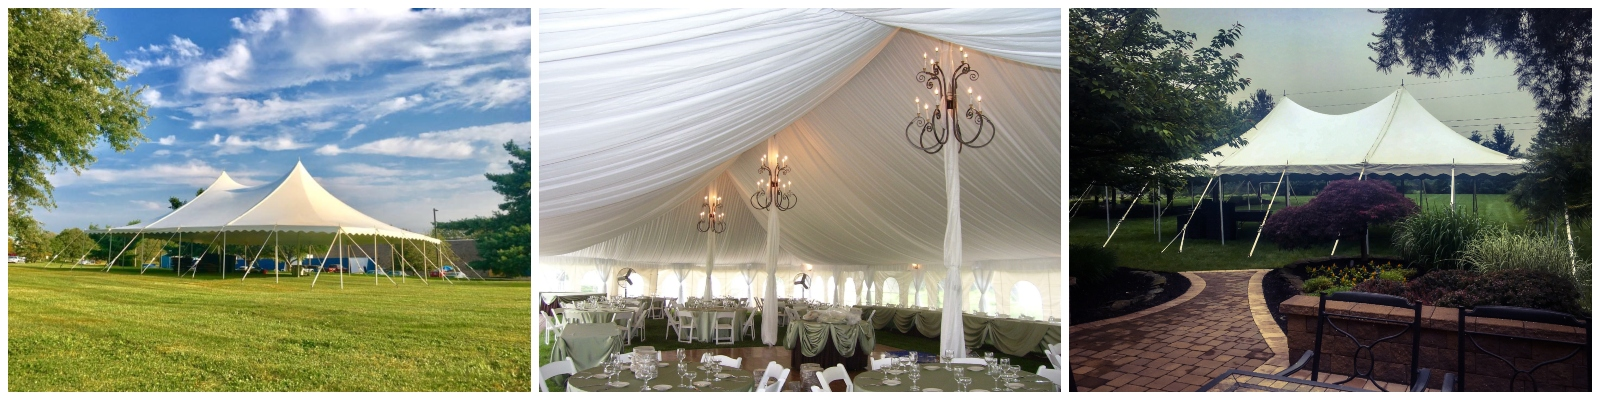 Wedding rentals in Montgomery County PA